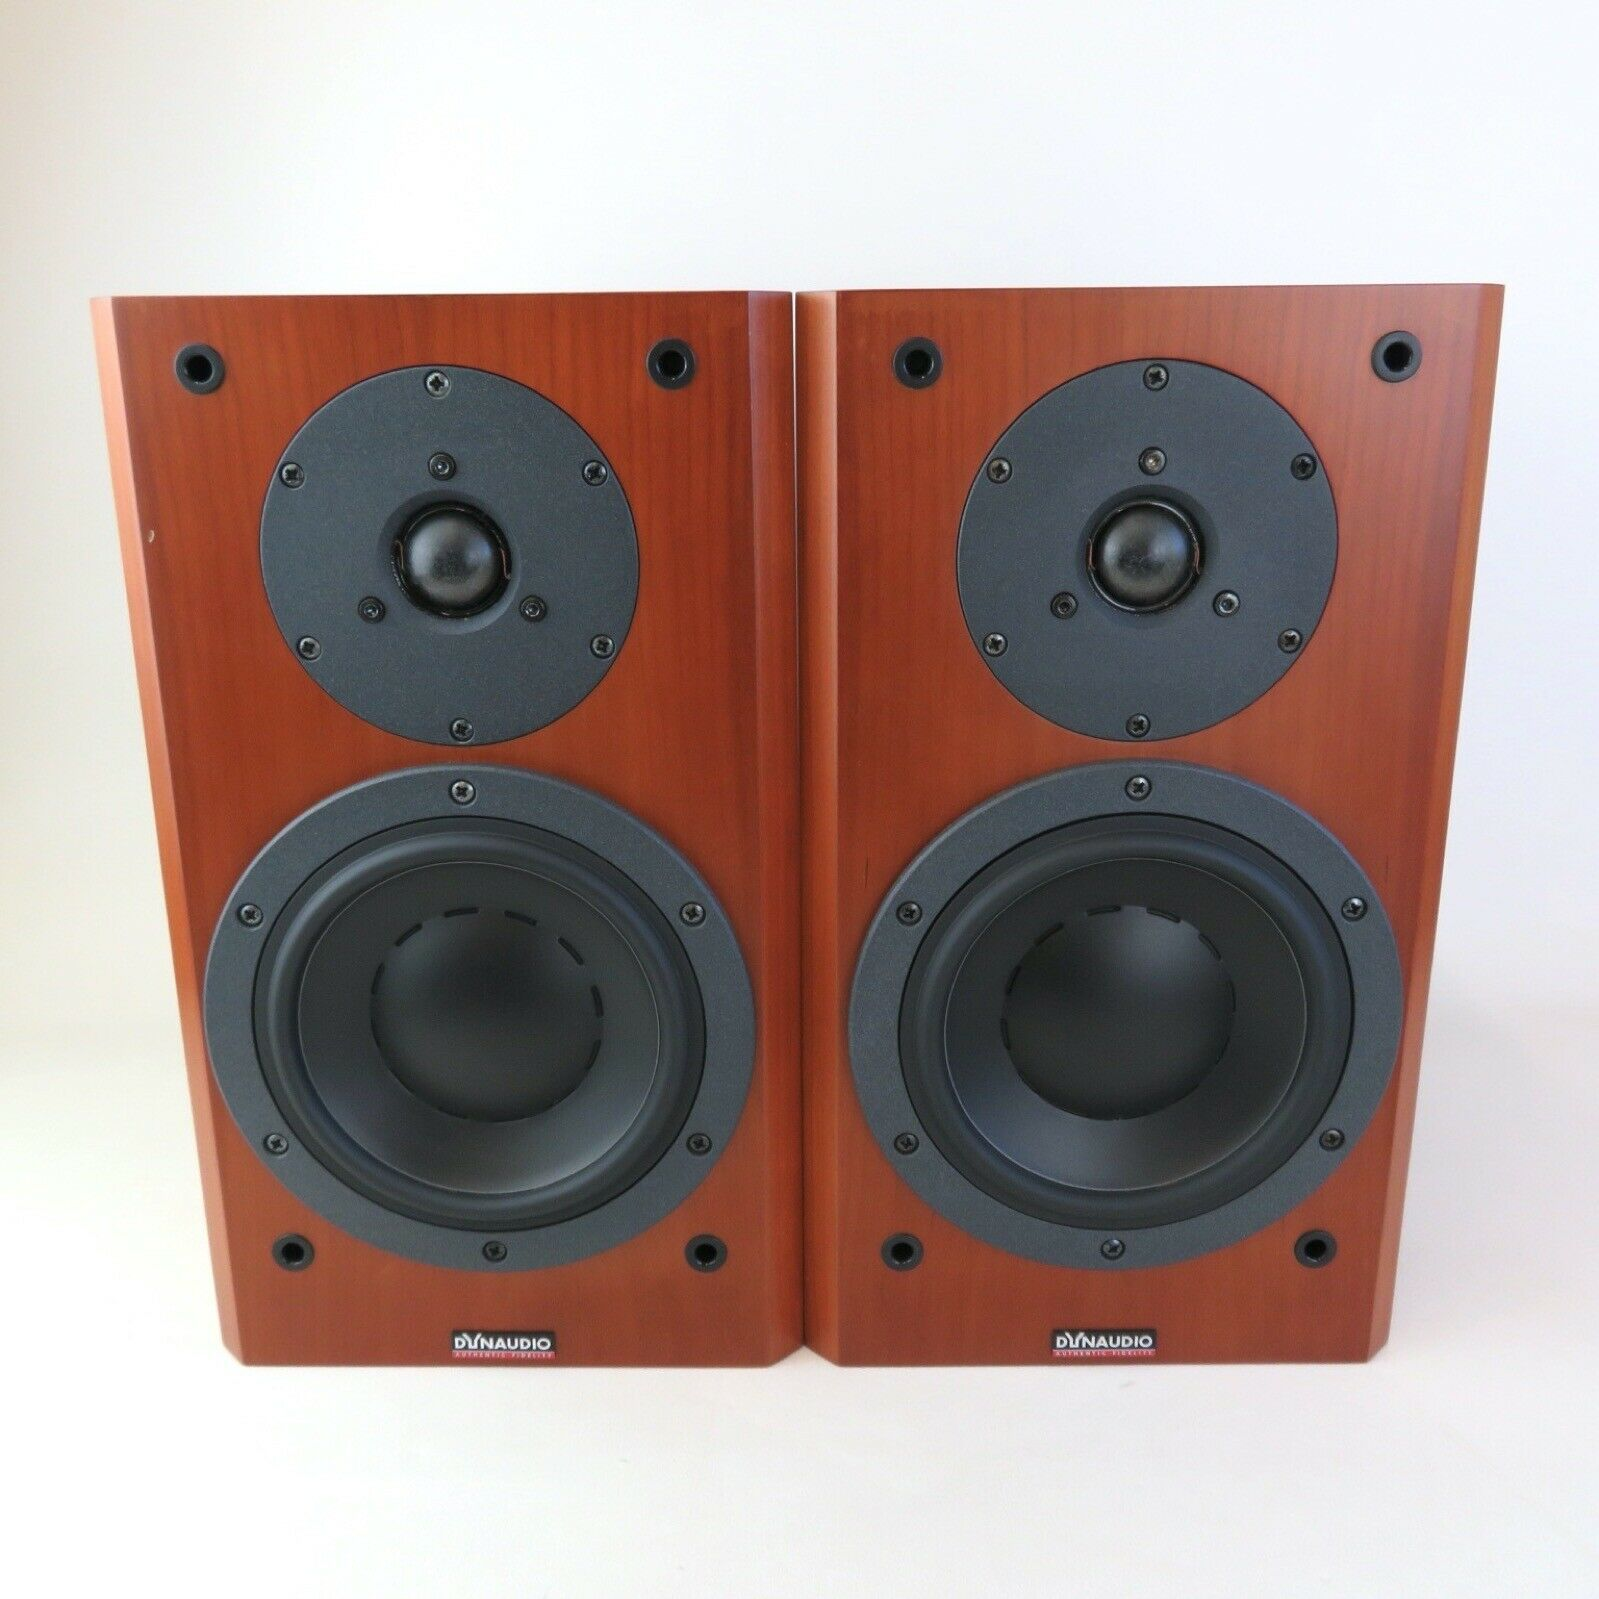 Dynaudio Focus 140 stereo speakers with optional stands (stands not included)